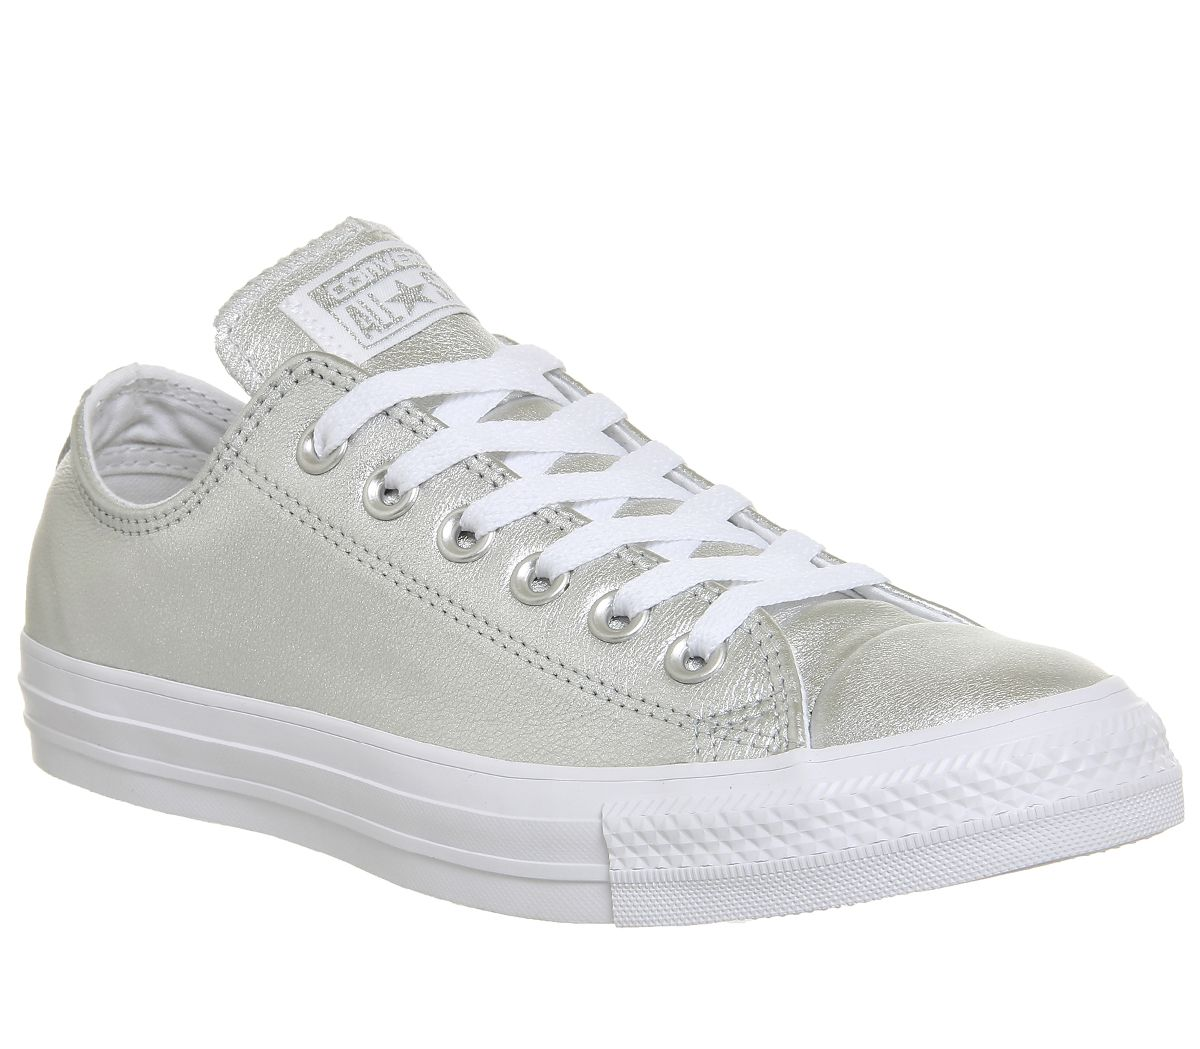 704123ffc1c65f Converse All Star Low Leather Pure Silver White - Hers trainers